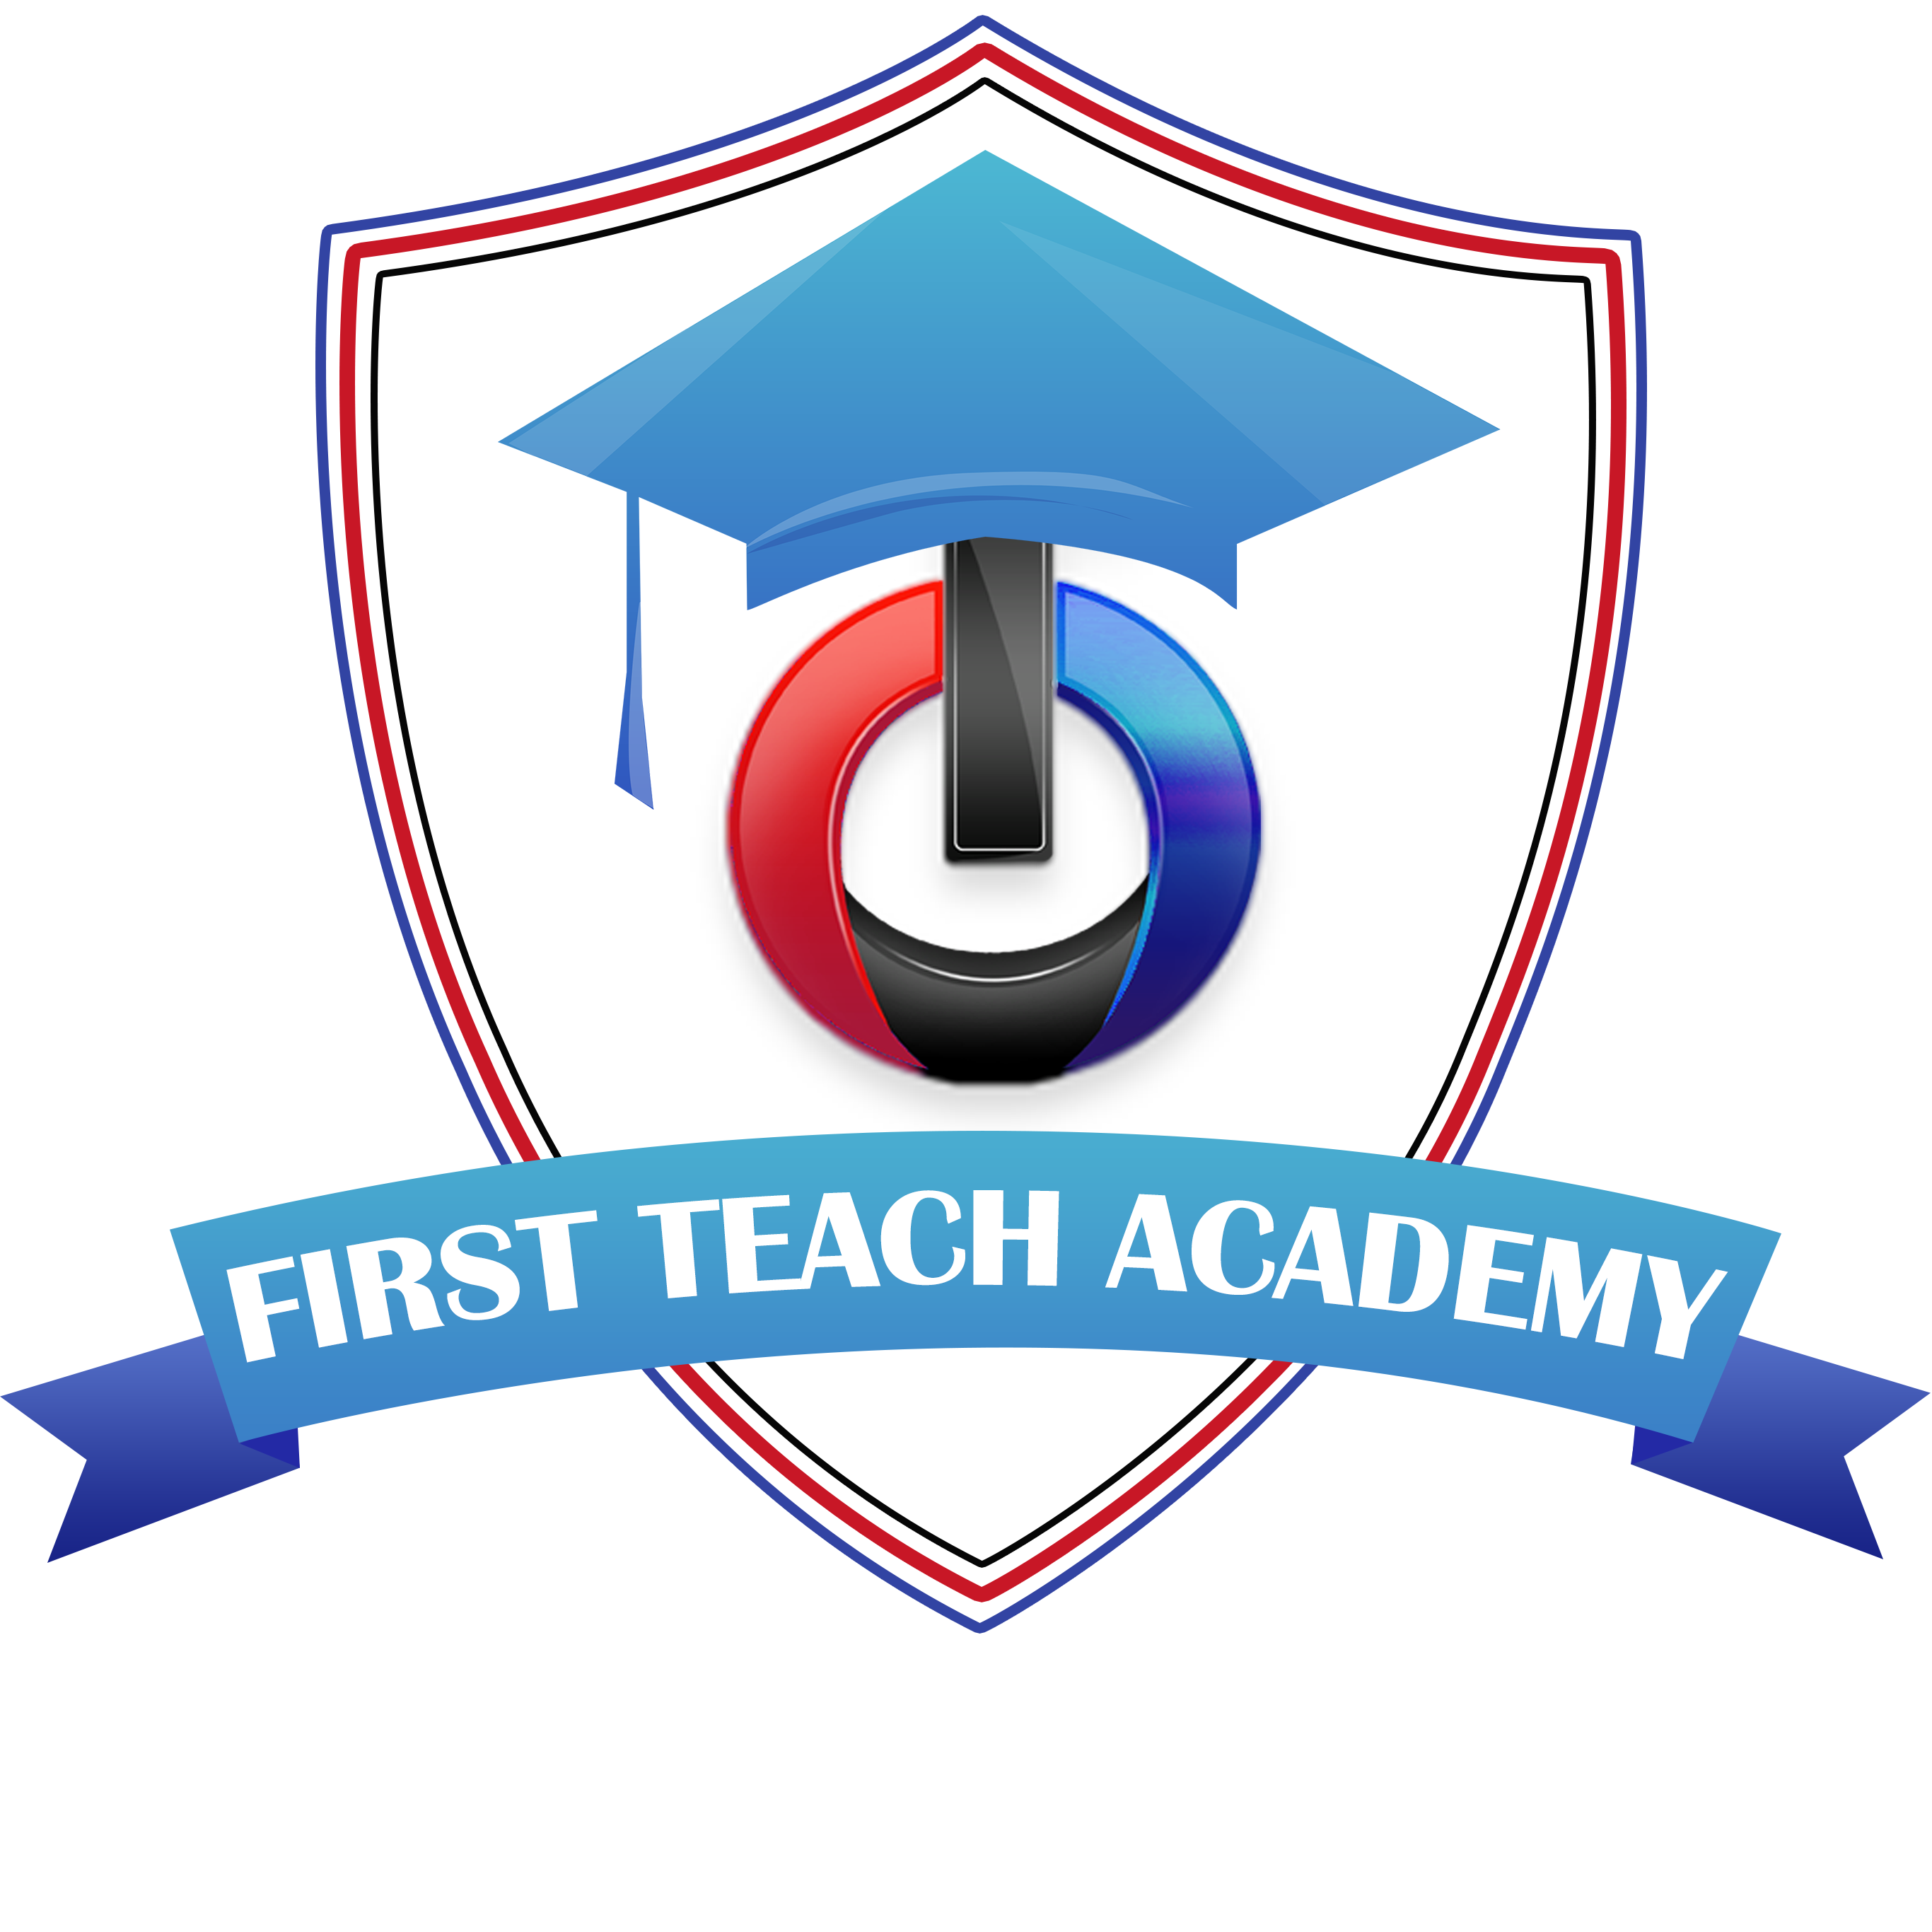 Firsttech Academy